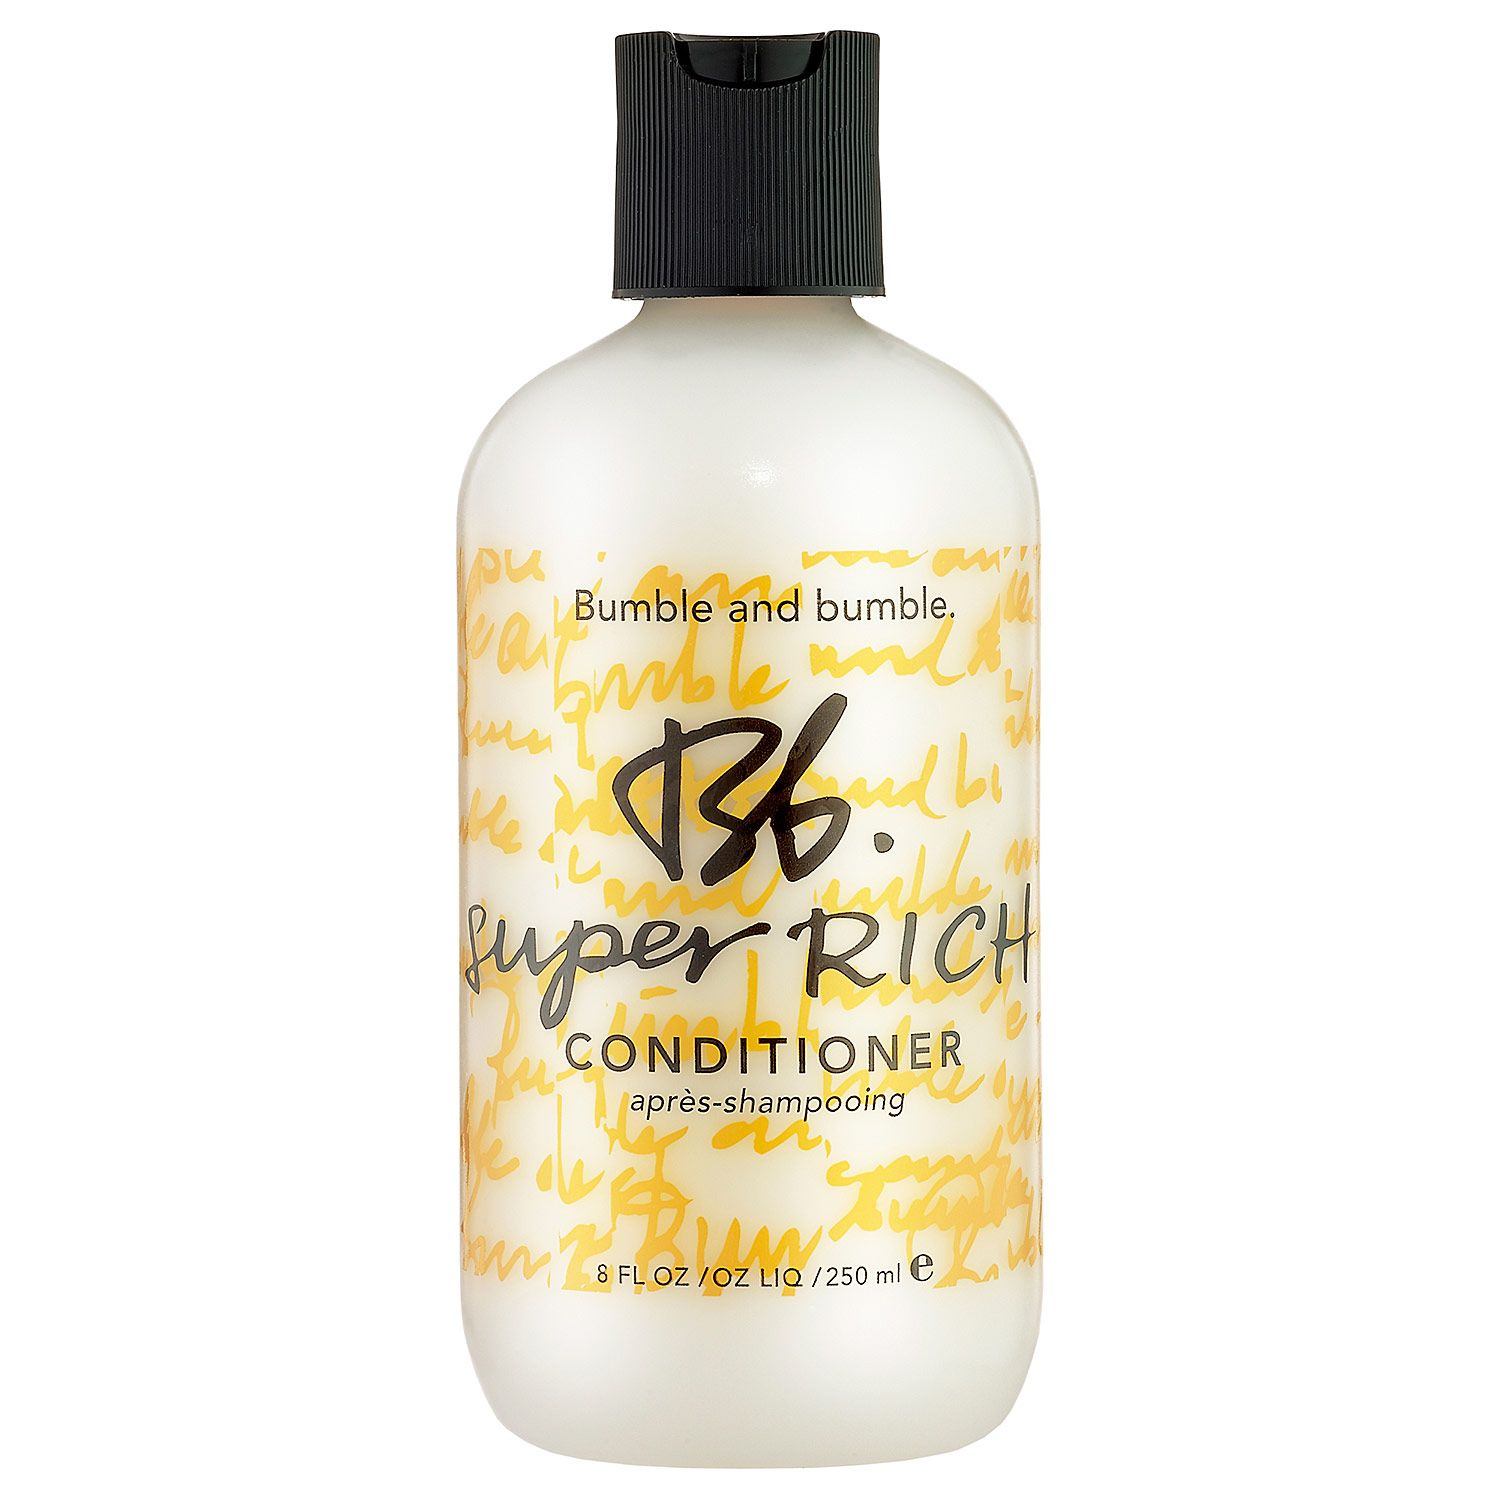 Super Rich Conditioner Bumble and bumble Sephora products I